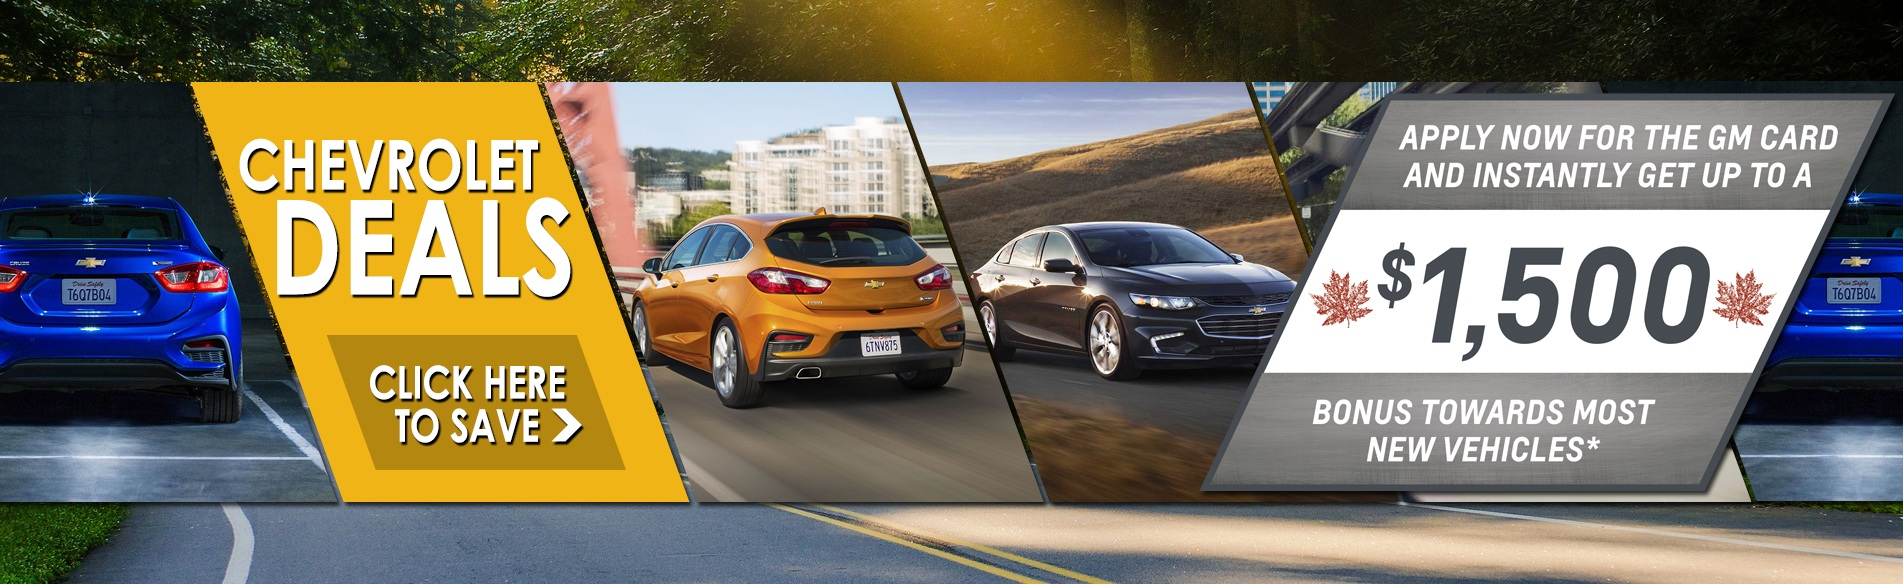 Great deals on new Chevrolet cars, trucks and SUVs in Georgetown Ontario at Georgetown Chevrolet